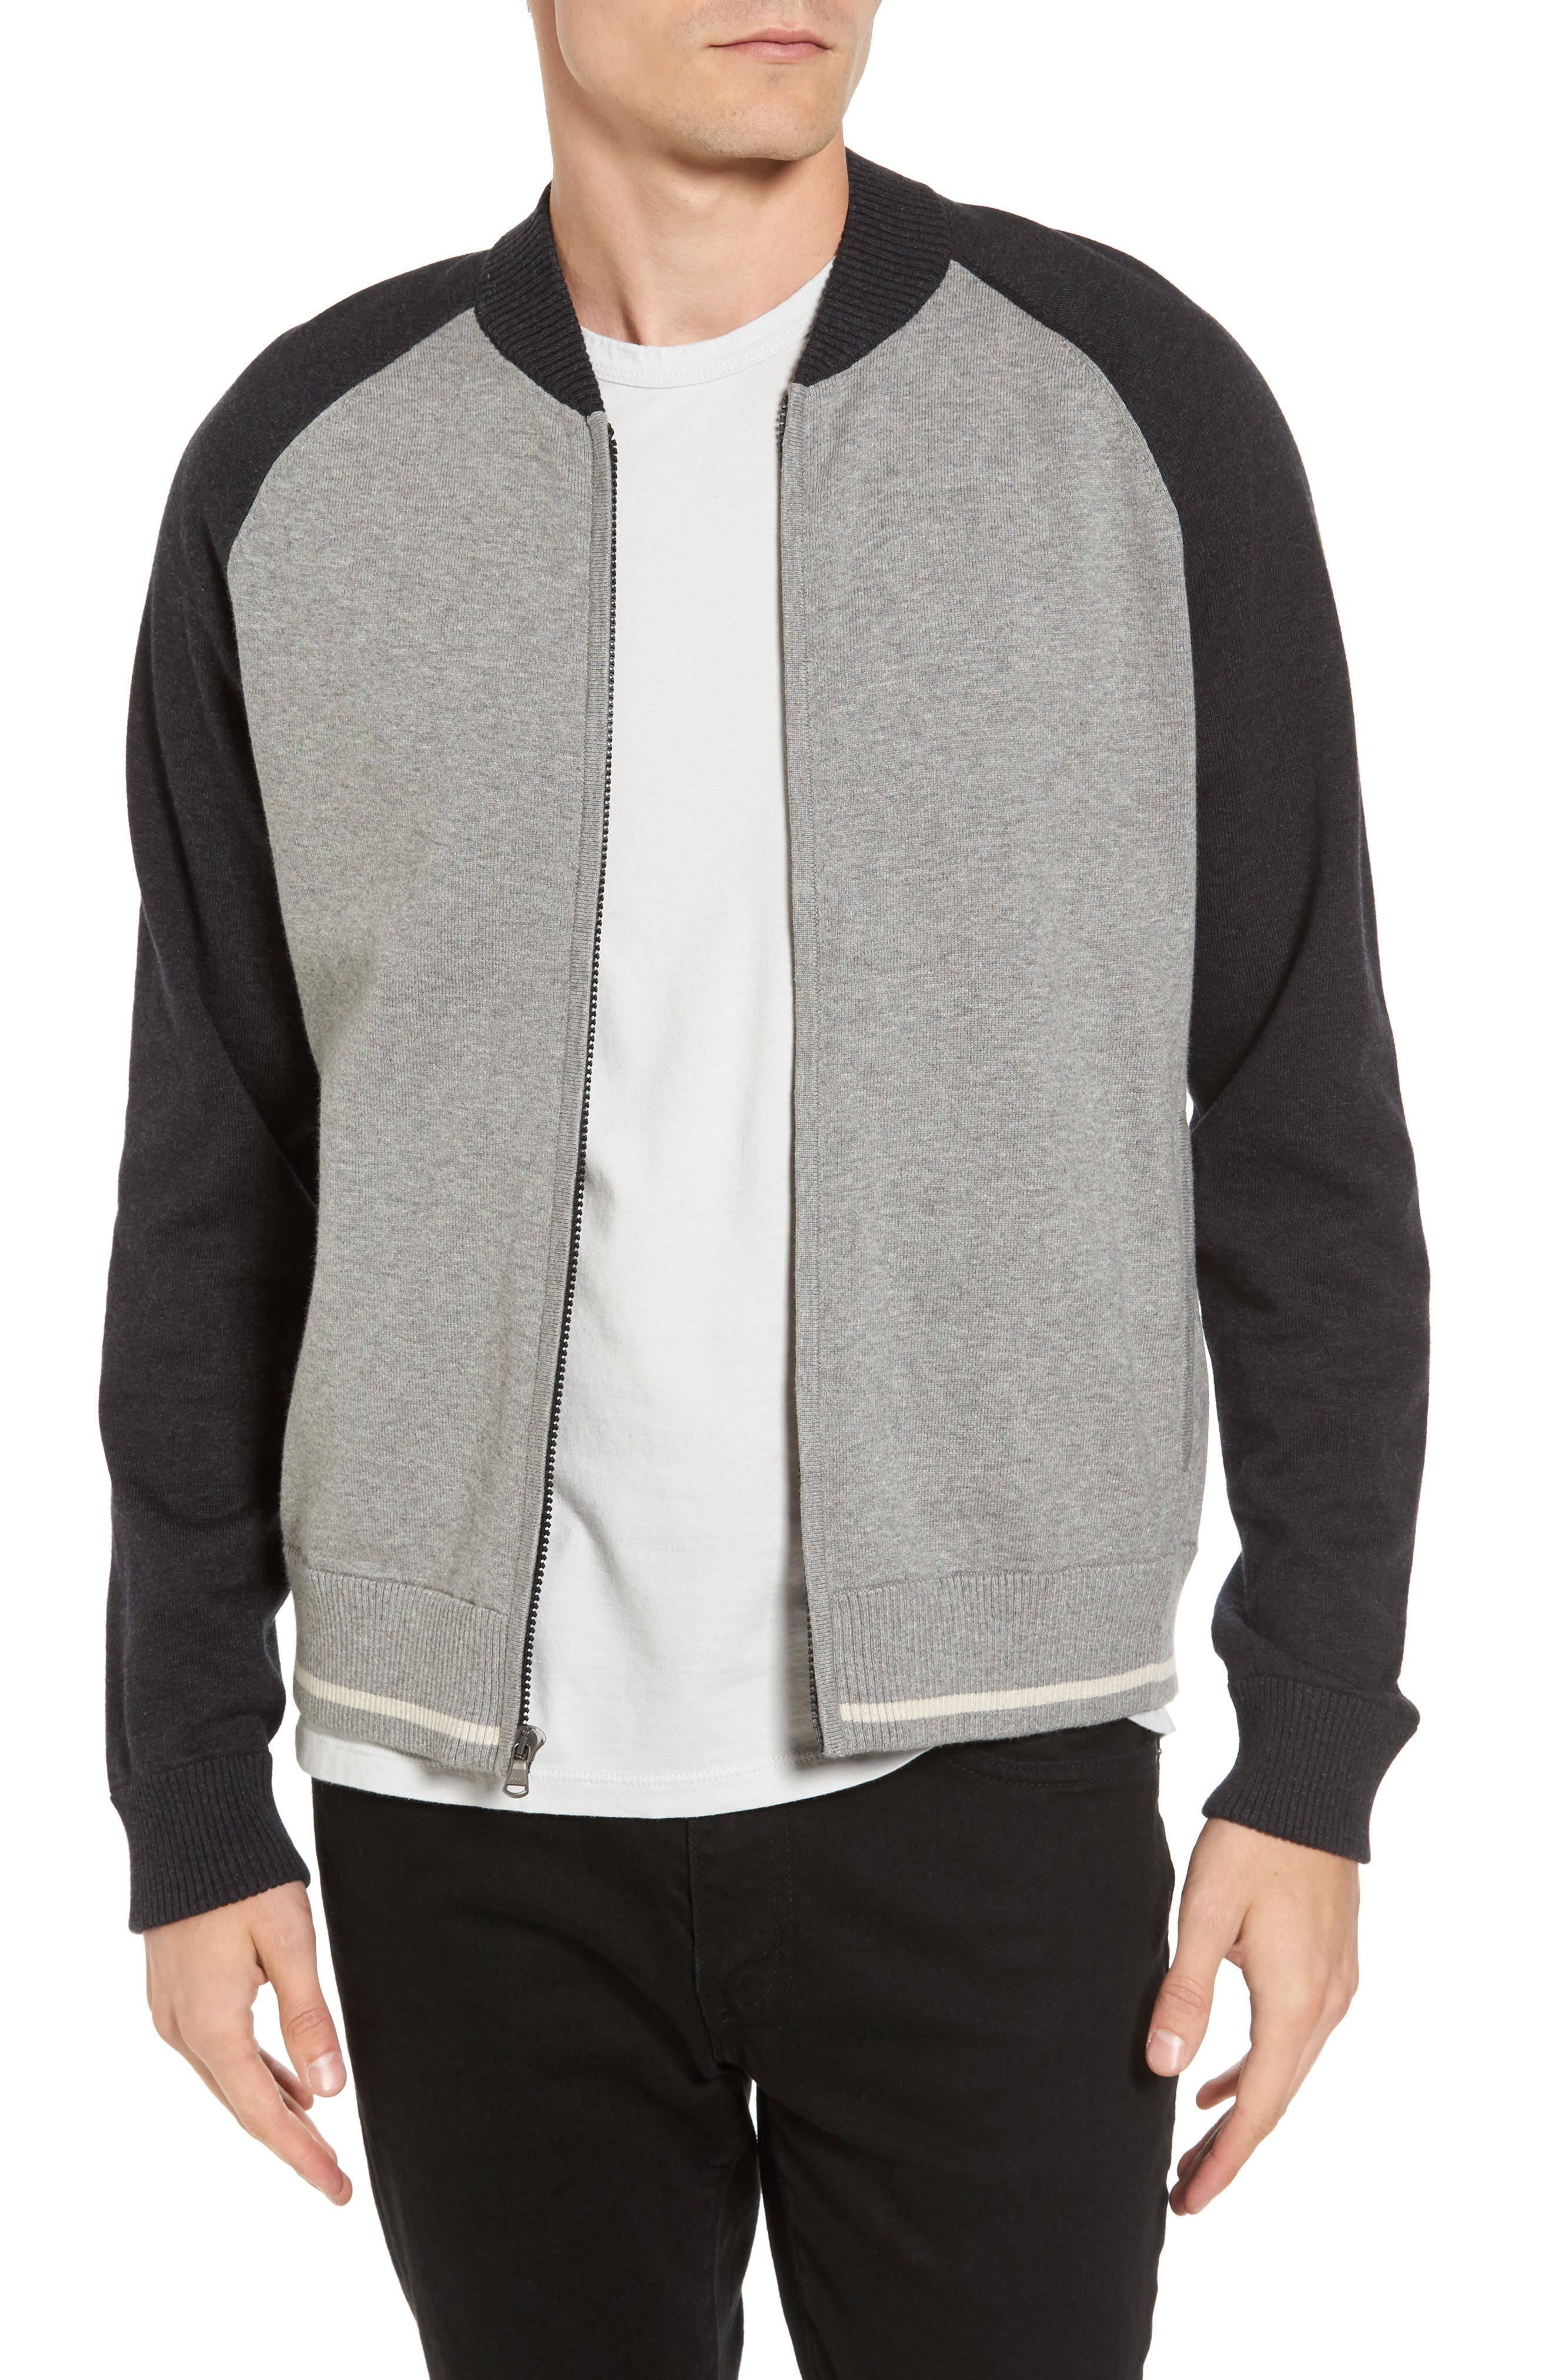 Alternate Image 1 Selected - James Perse Colorblock Knit Track Jacket